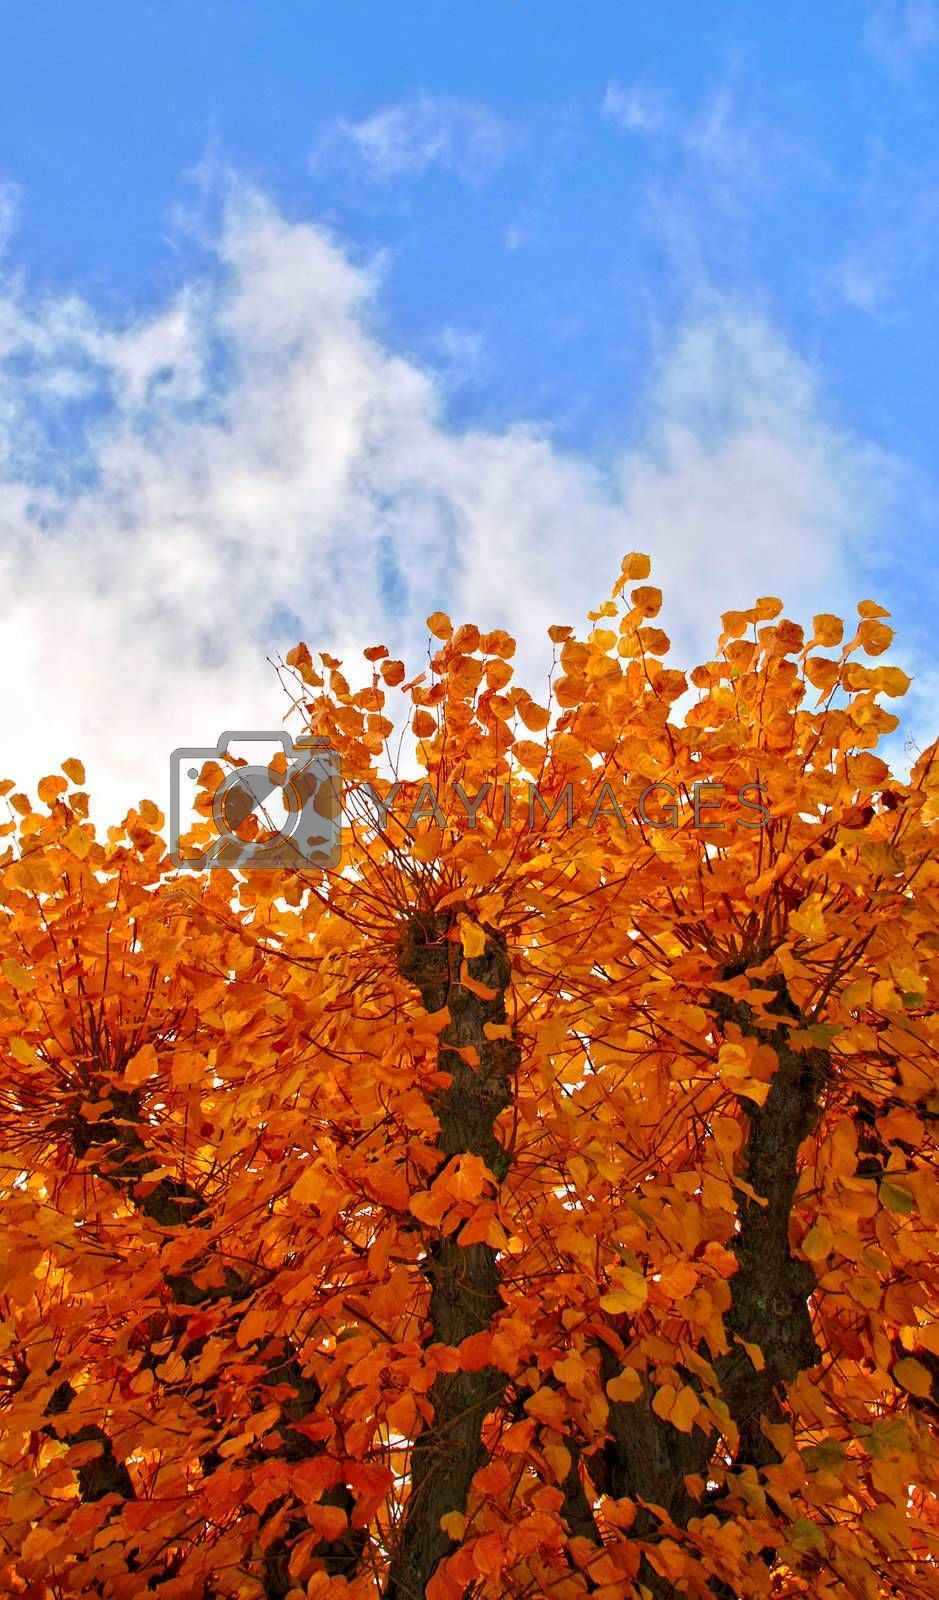 Golden trees on background of blue sky